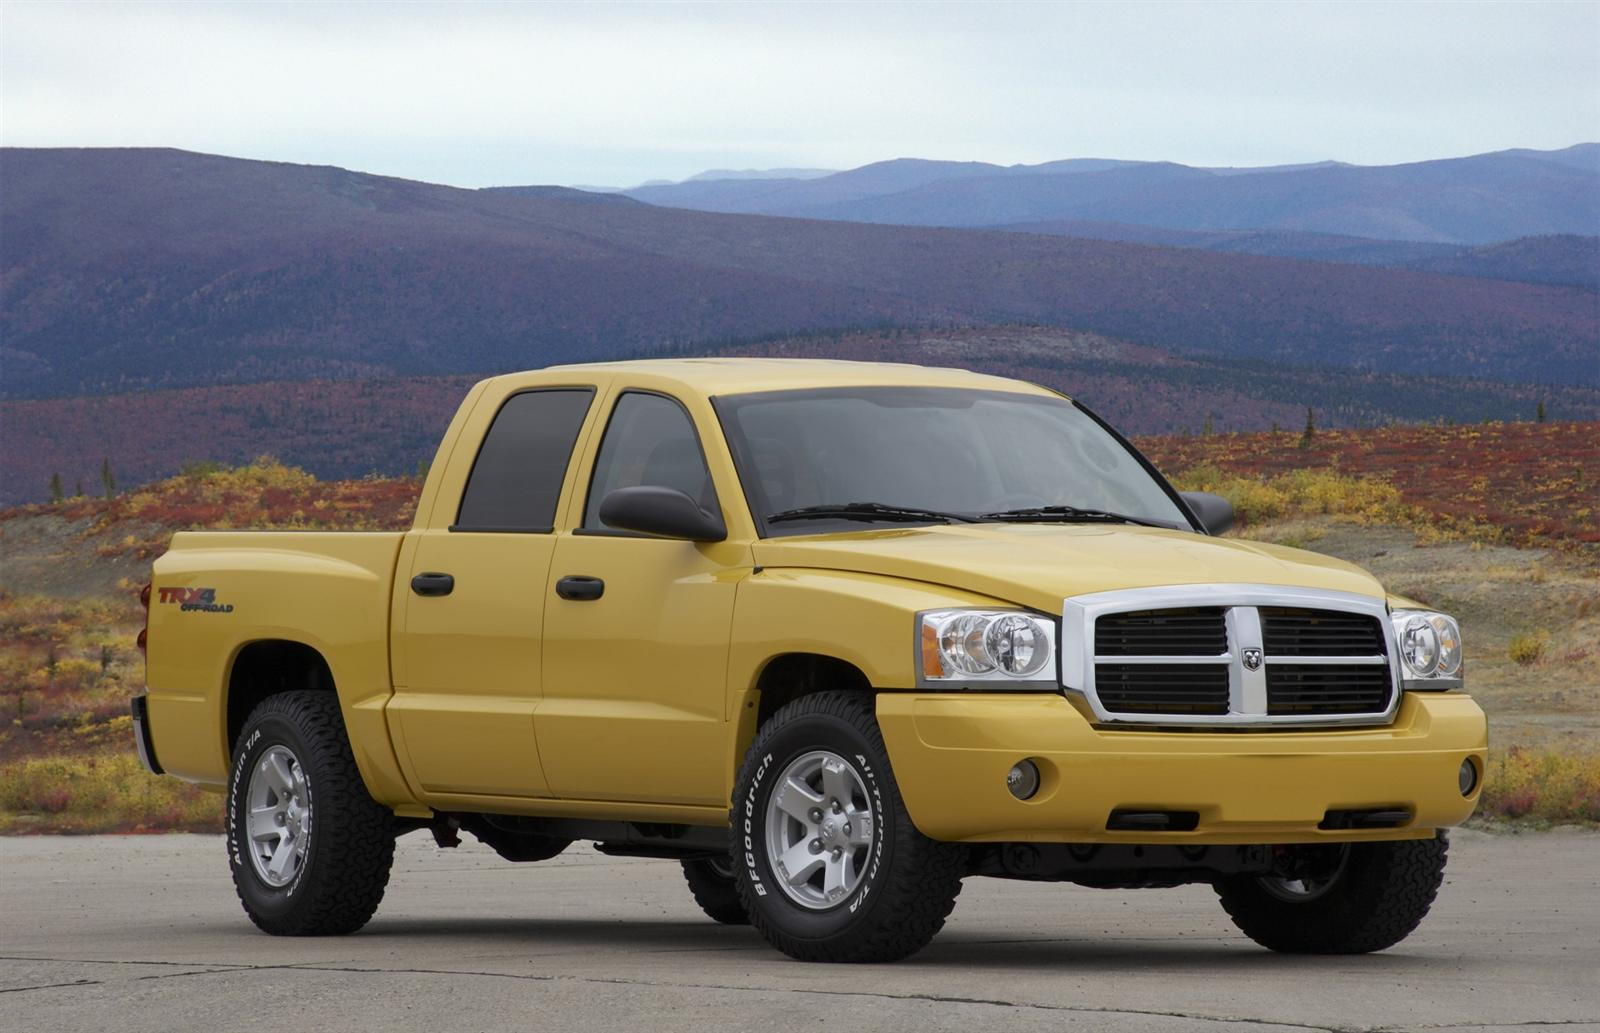 2007 dodge dakota images photo 2007 dodge dakota truck. Black Bedroom Furniture Sets. Home Design Ideas